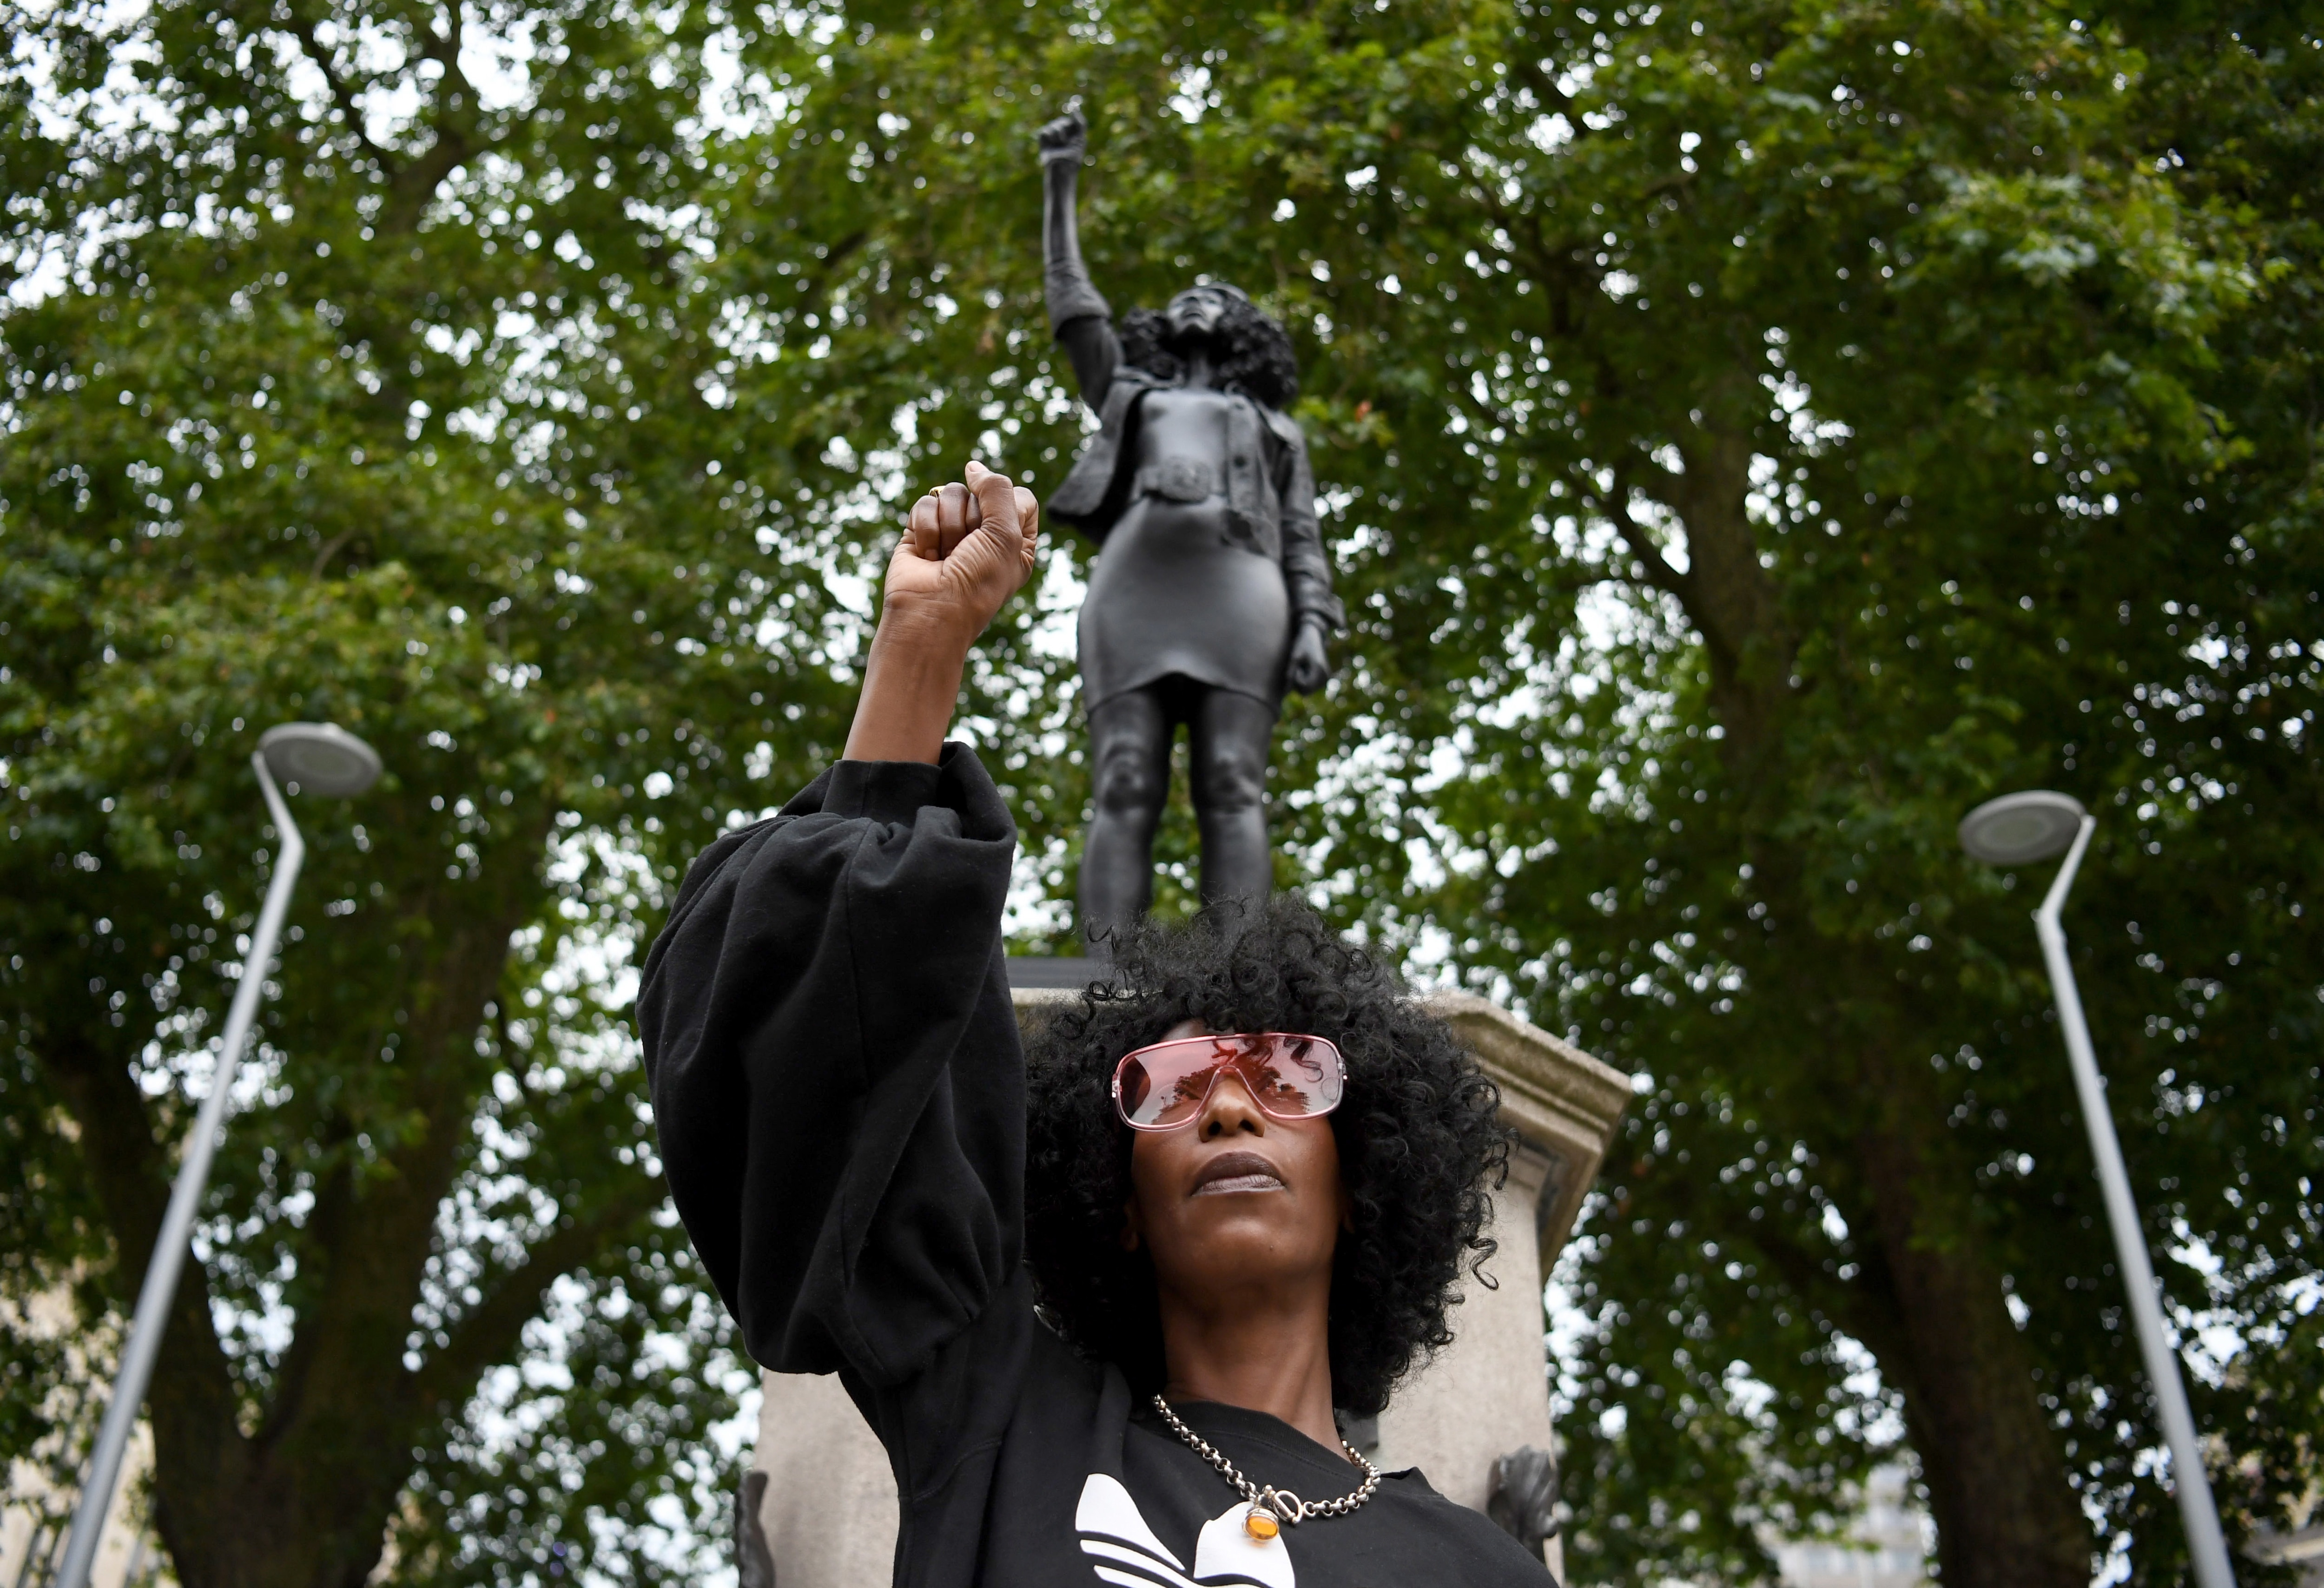 B;ack Lives Matter protester Jen Reid poses in front of a statue of herself.